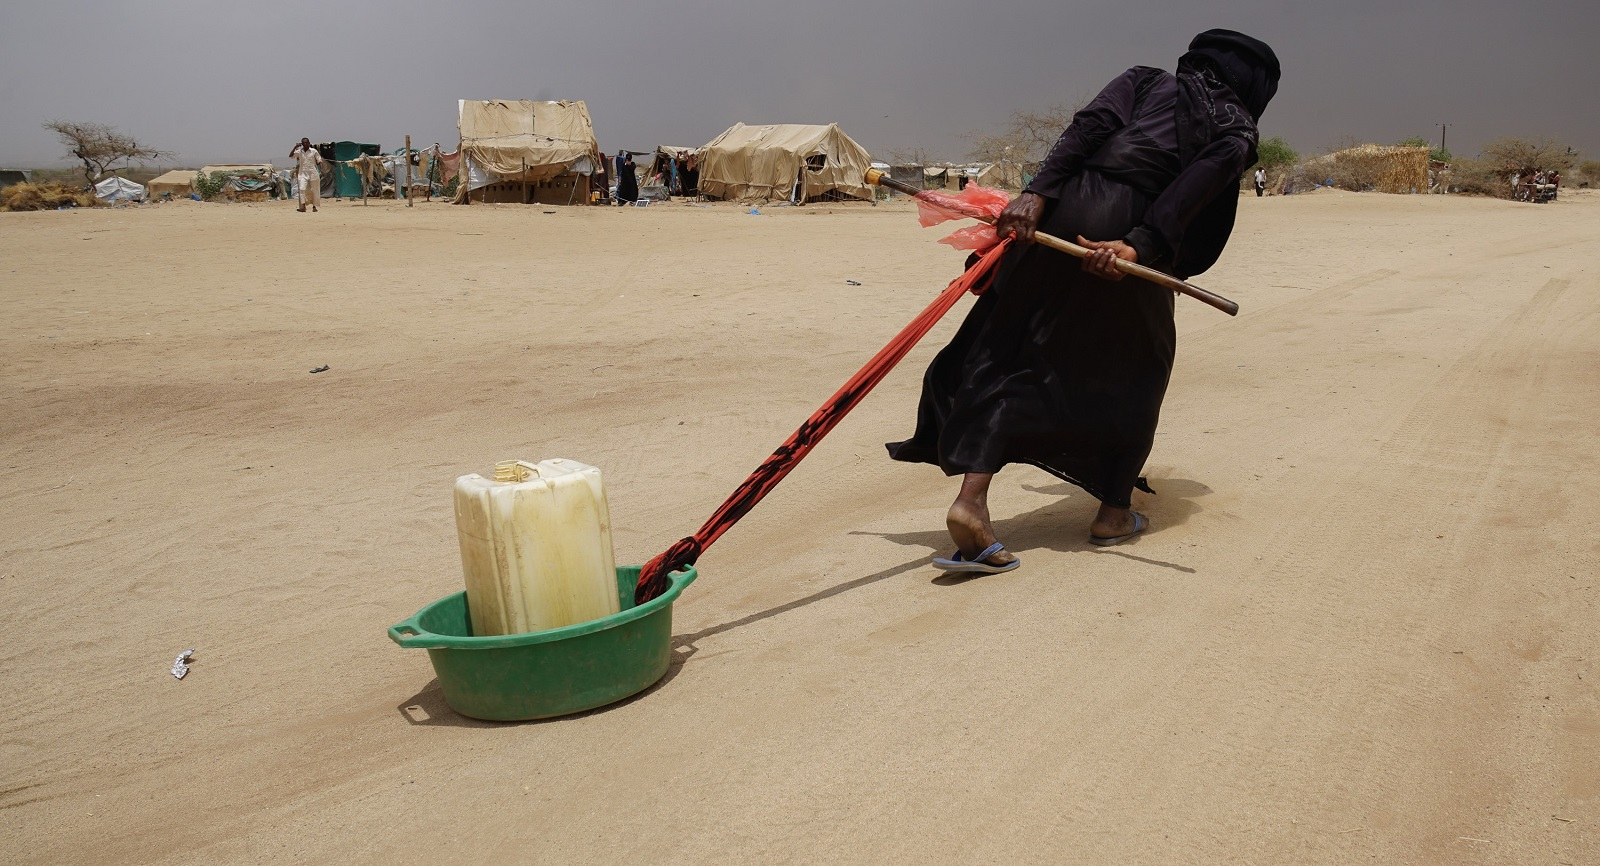 A displaced Yemeni woman drags water back to her tent in an ABS IDP camp. (Photo: Giles Clarke, UN OCHA/Getty Images)